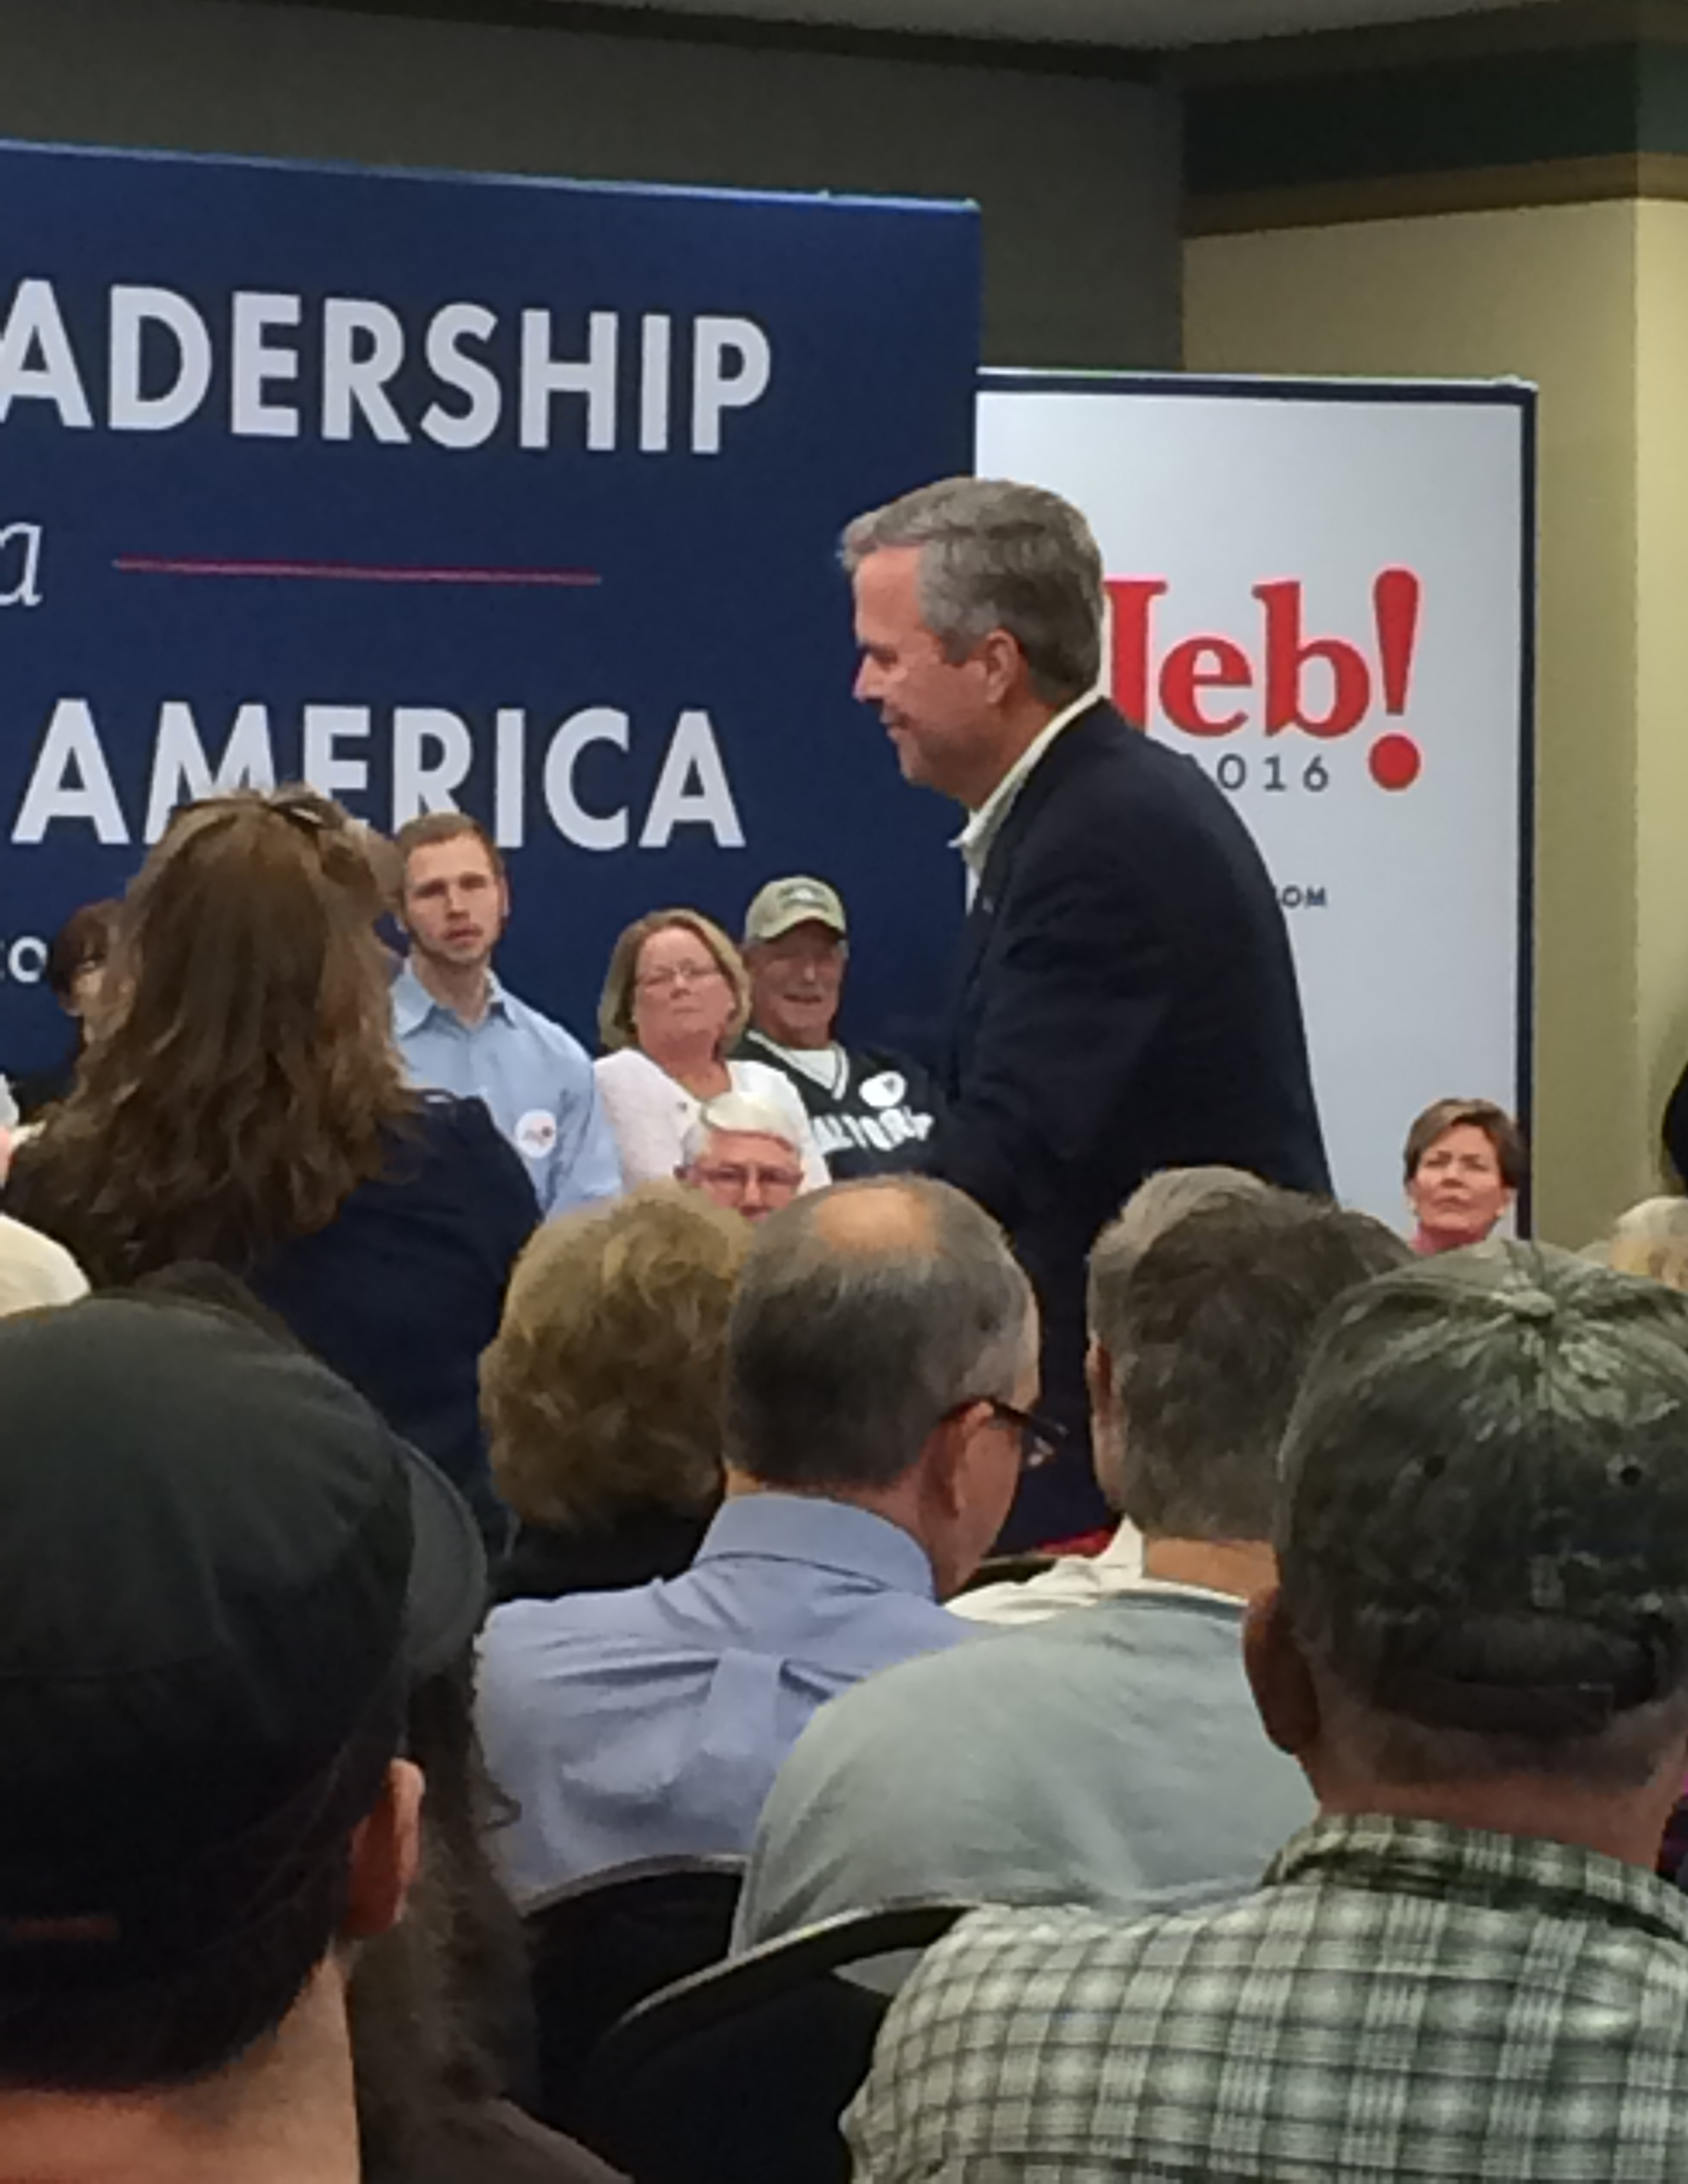 Jeb listening to a question from the audience.